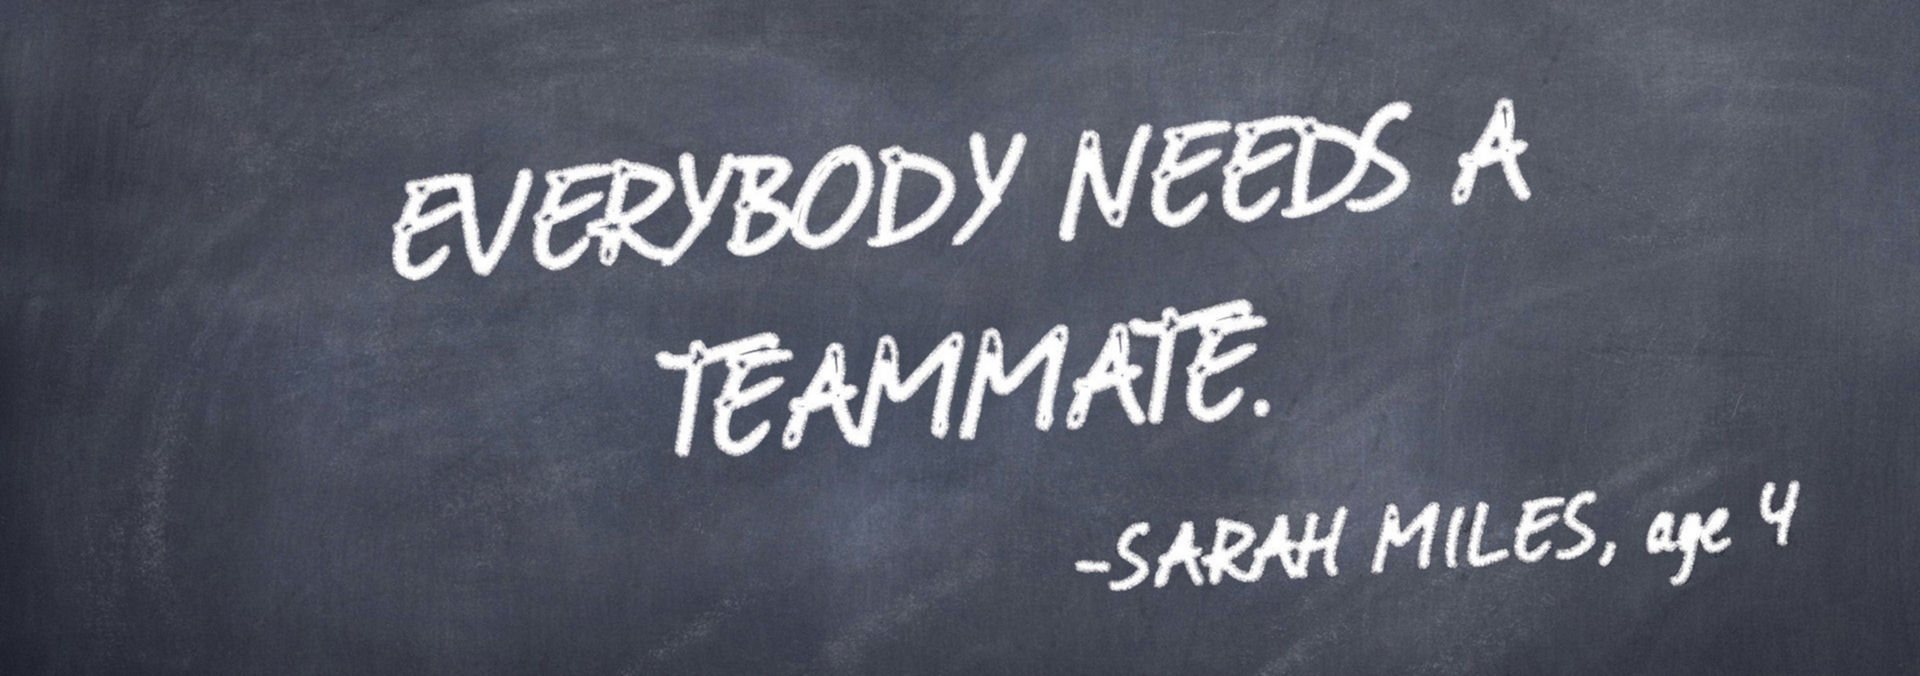 Everybody Needs A Teammate